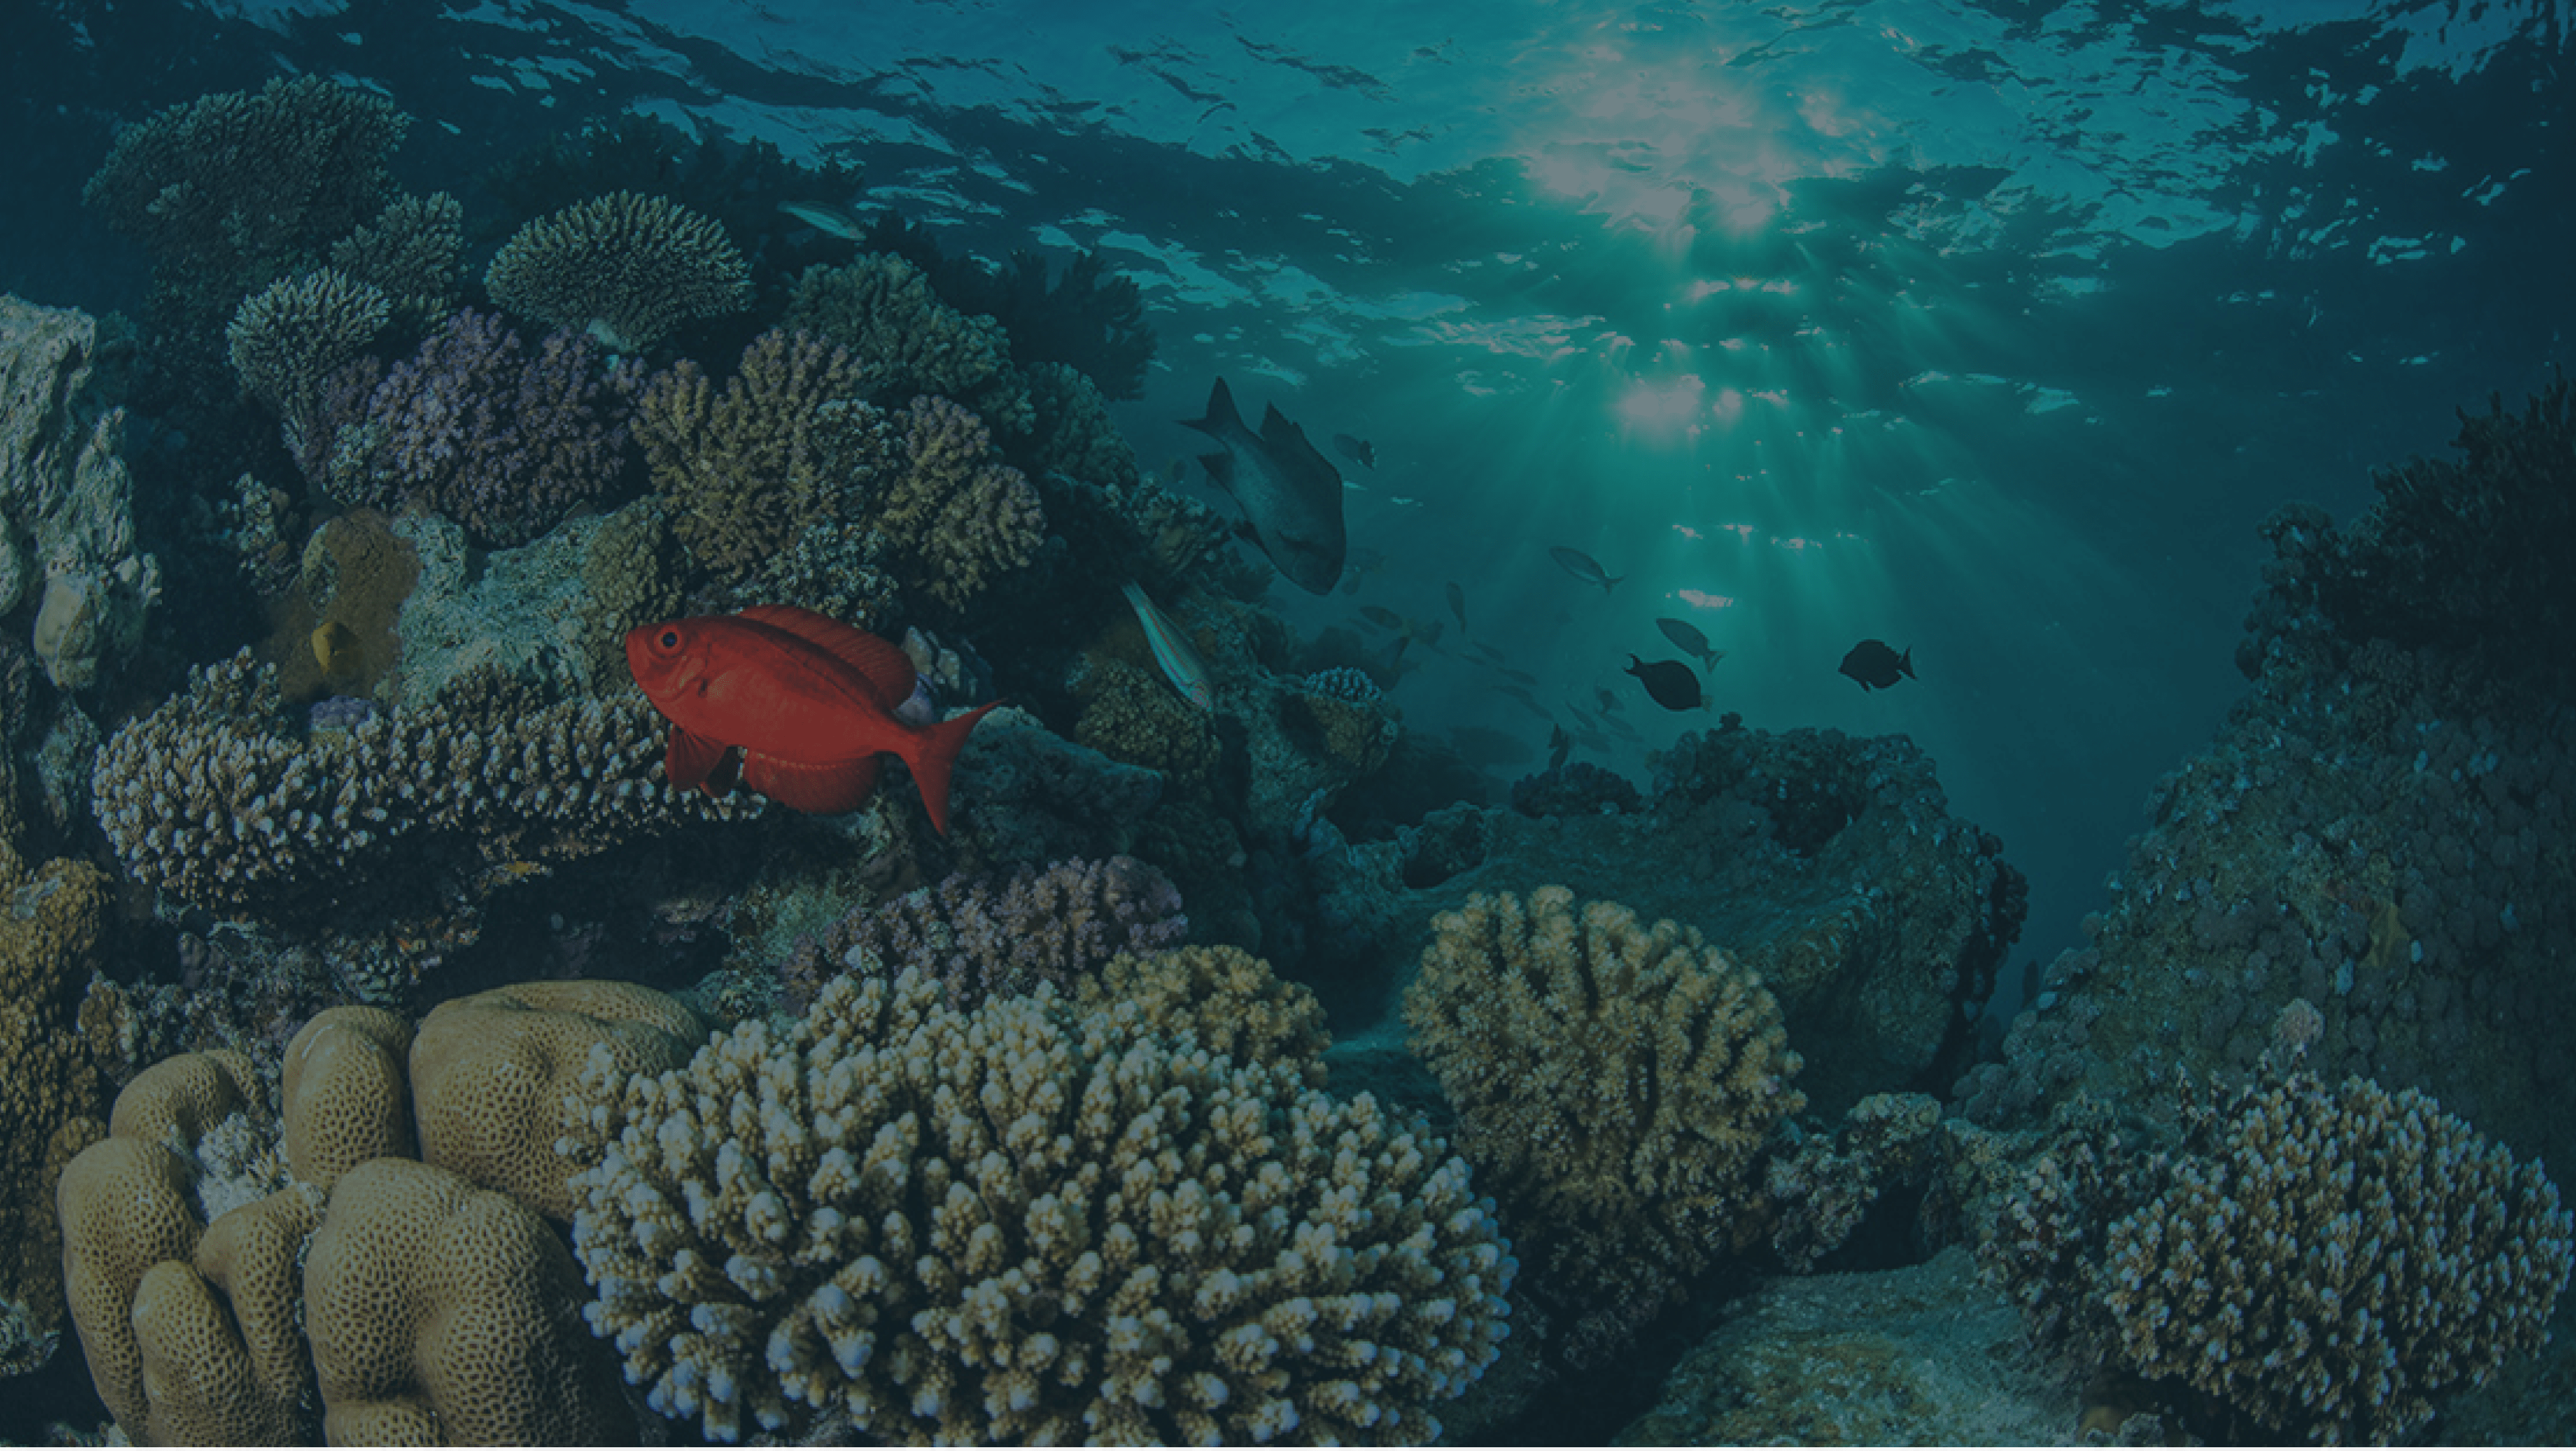 Coral Ocean Bed with fish